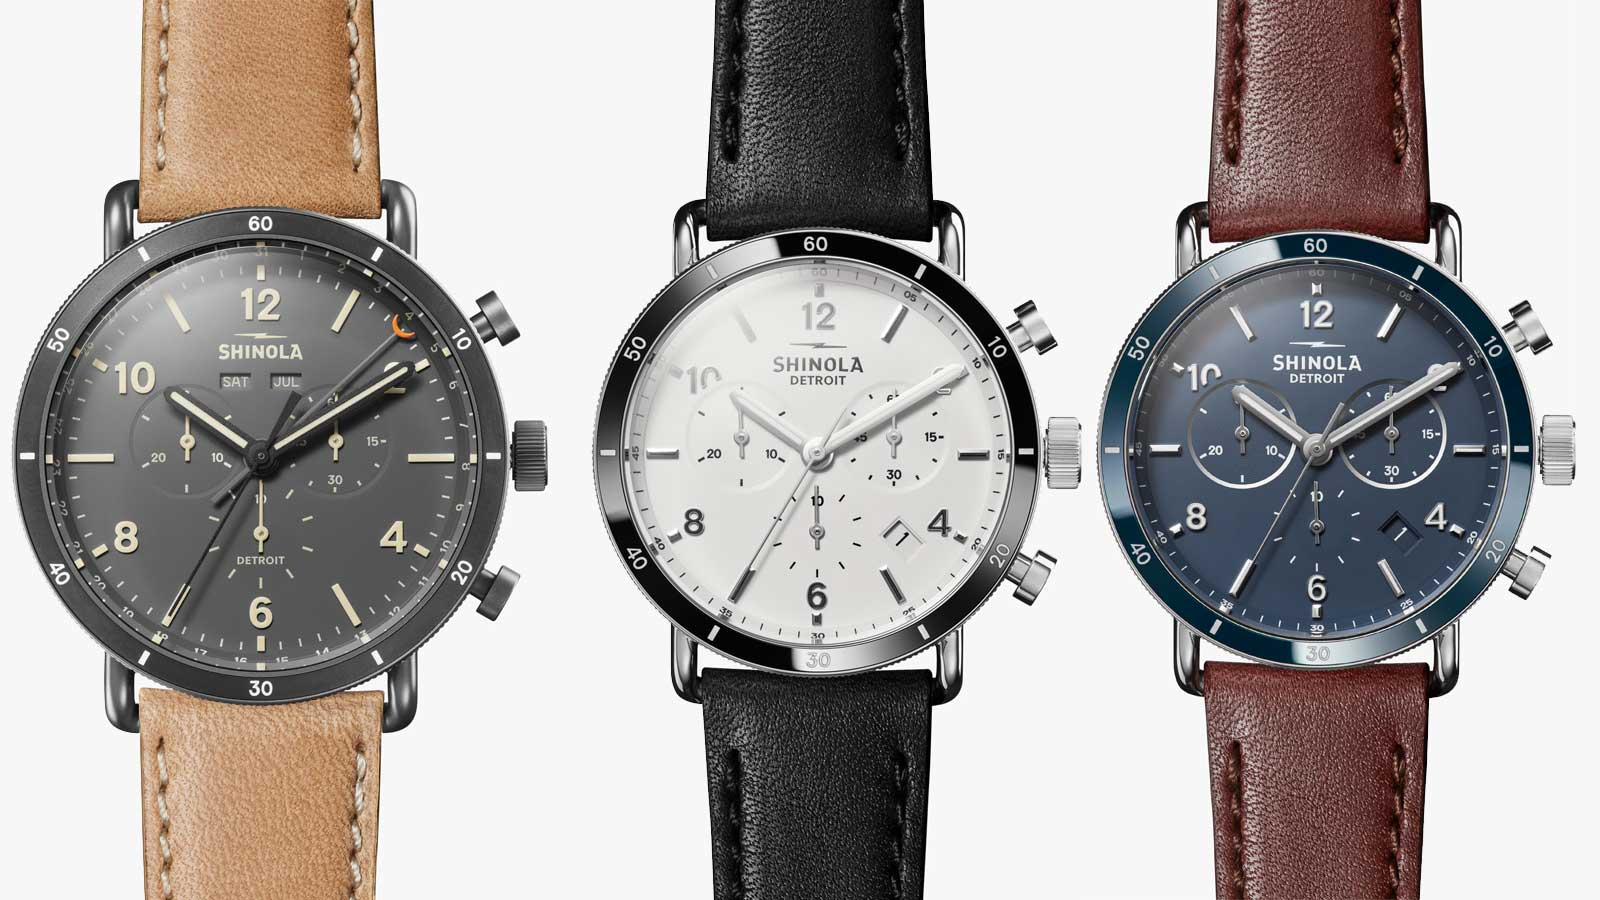 The Shinola Canfield